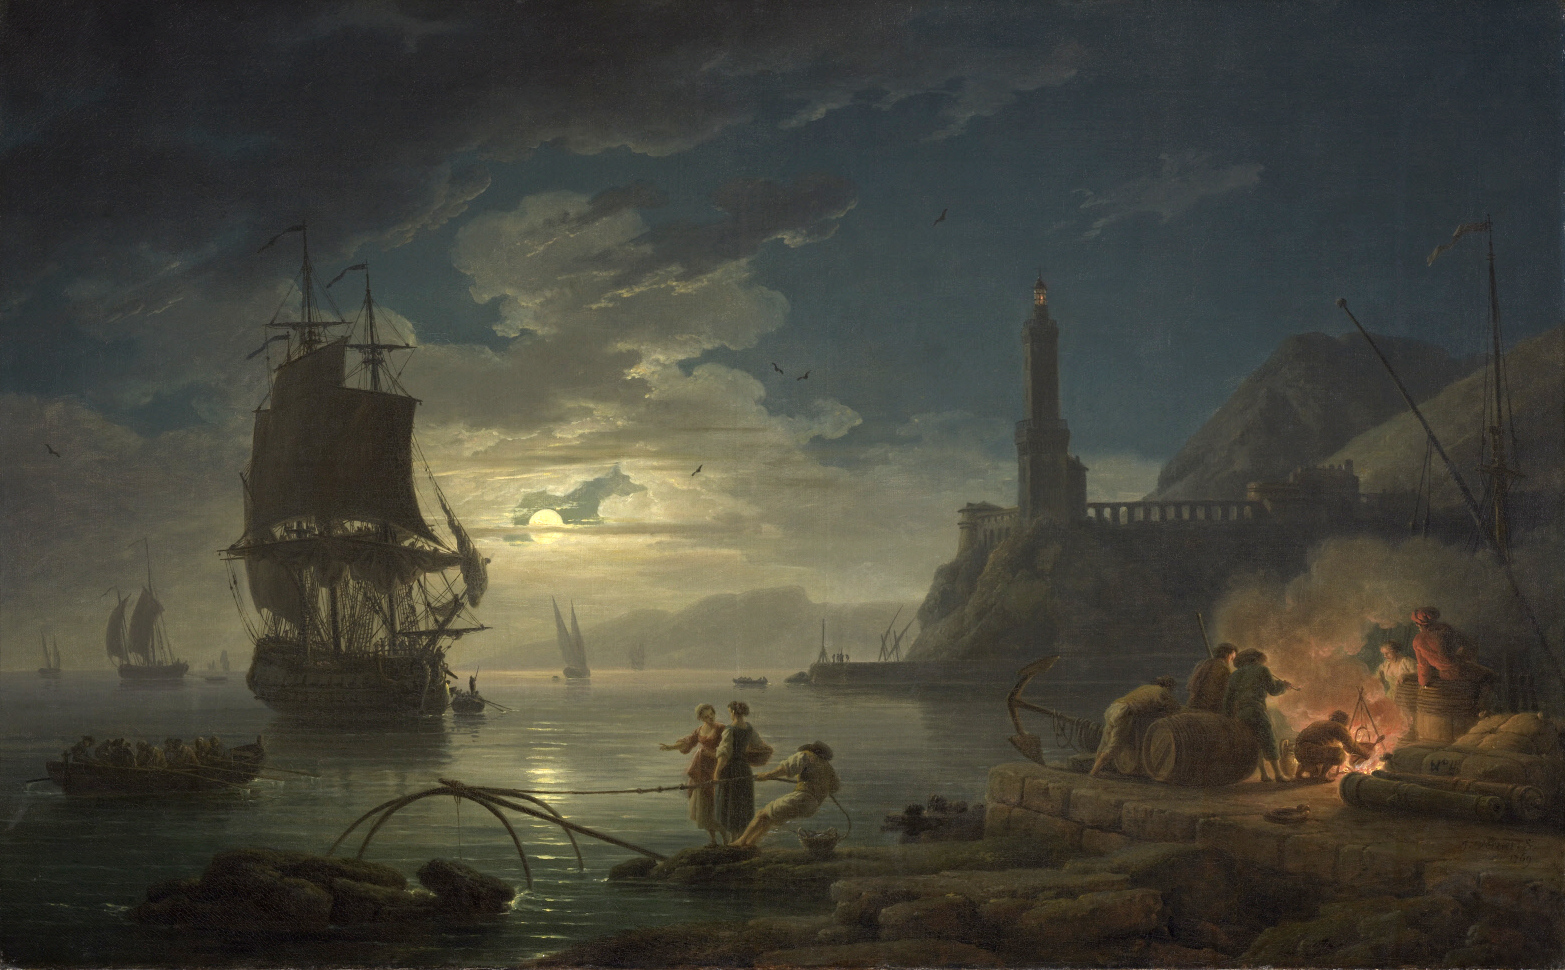 Claude-Joseph Vernet – The Clark Museum 1977.17 . Title: Coastal Scene in Moonlight. Date: 1769. Materials: oil on canvas. Dimensions: 81.3 x 130.8 cm. Nr.: 1977.17. Source: http://www.clarkart.edu/Collection/3010. I have changed the light and contrast of the original photo.